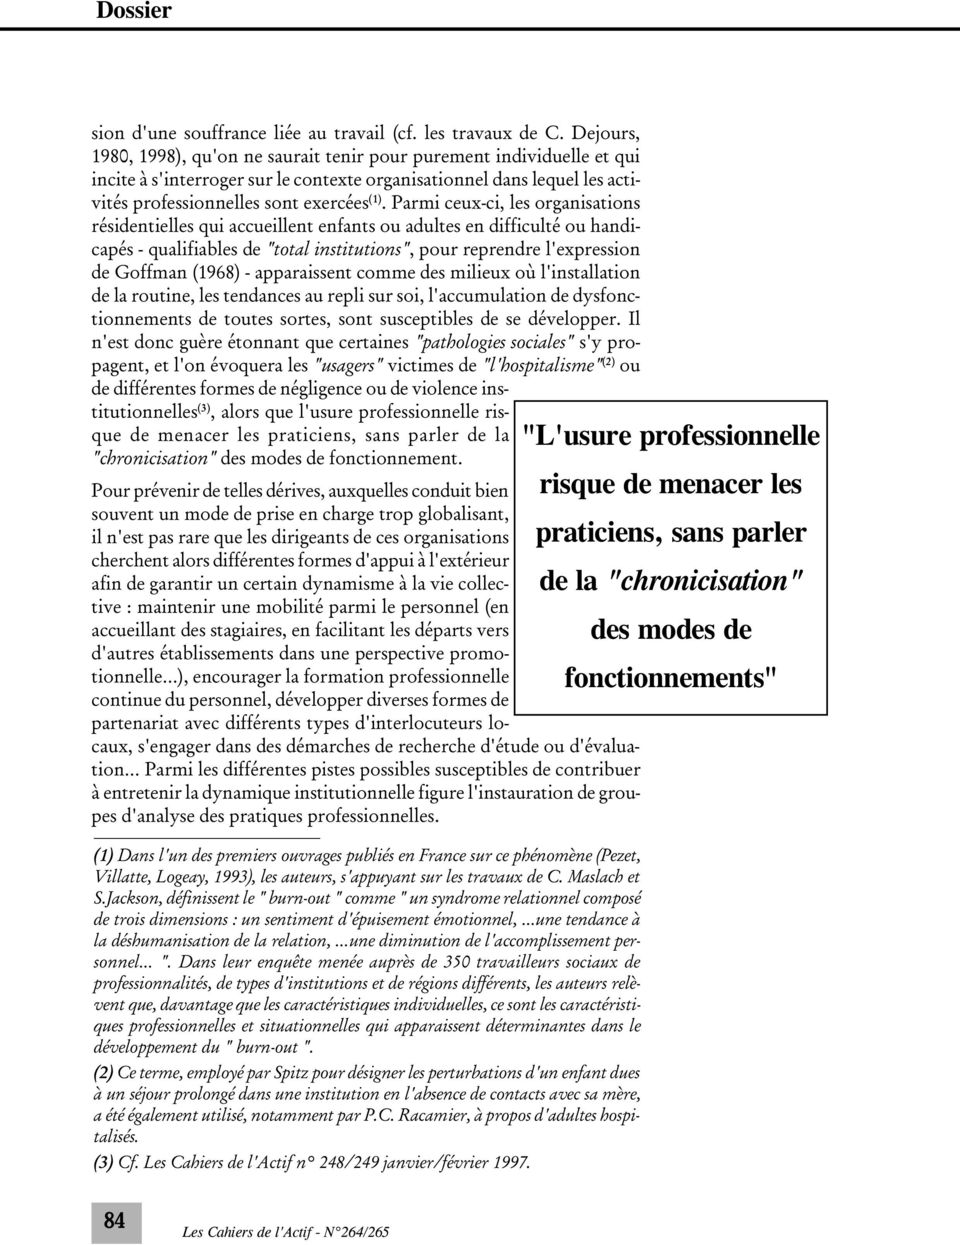 "Parmi ceux-ci, les organisations résidentielles qui accueillent enfants ou adultes en difficulté ou handicapés - qualifiables de ""total institutions"", pour reprendre l'expression de Goffman (1968) -"